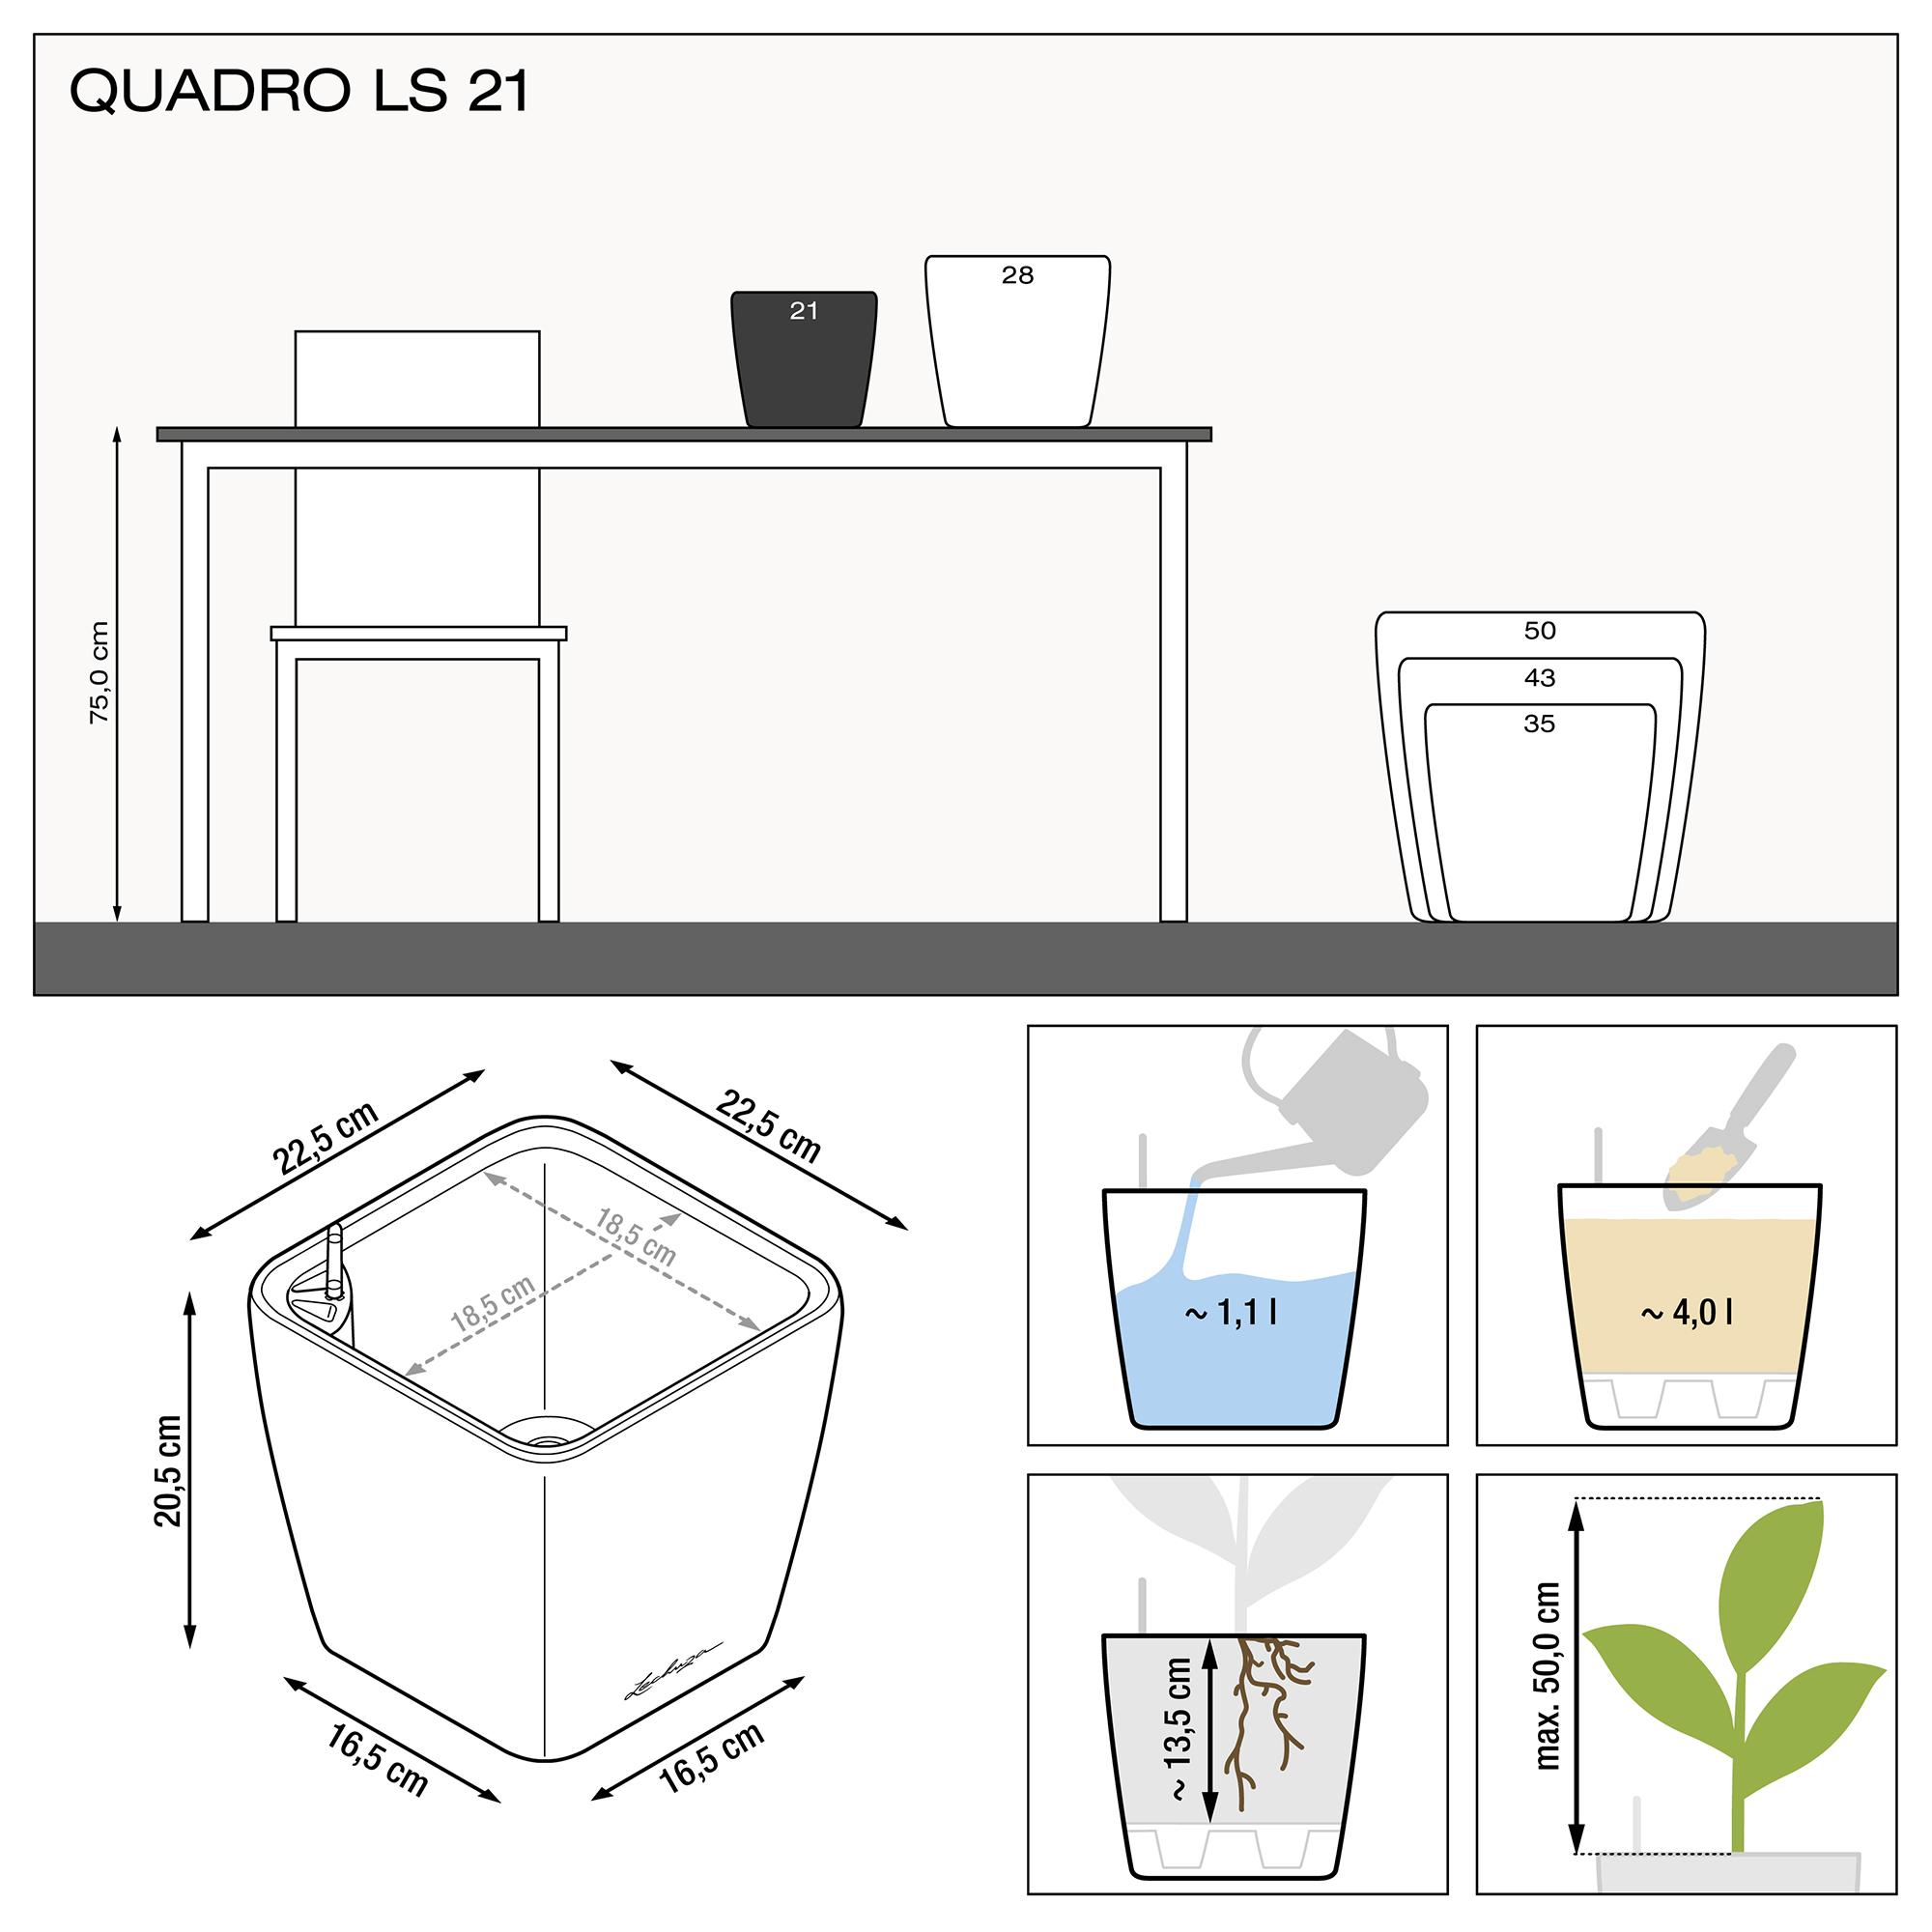 QUADRO LS 21 ice blue high-gloss - Image 3